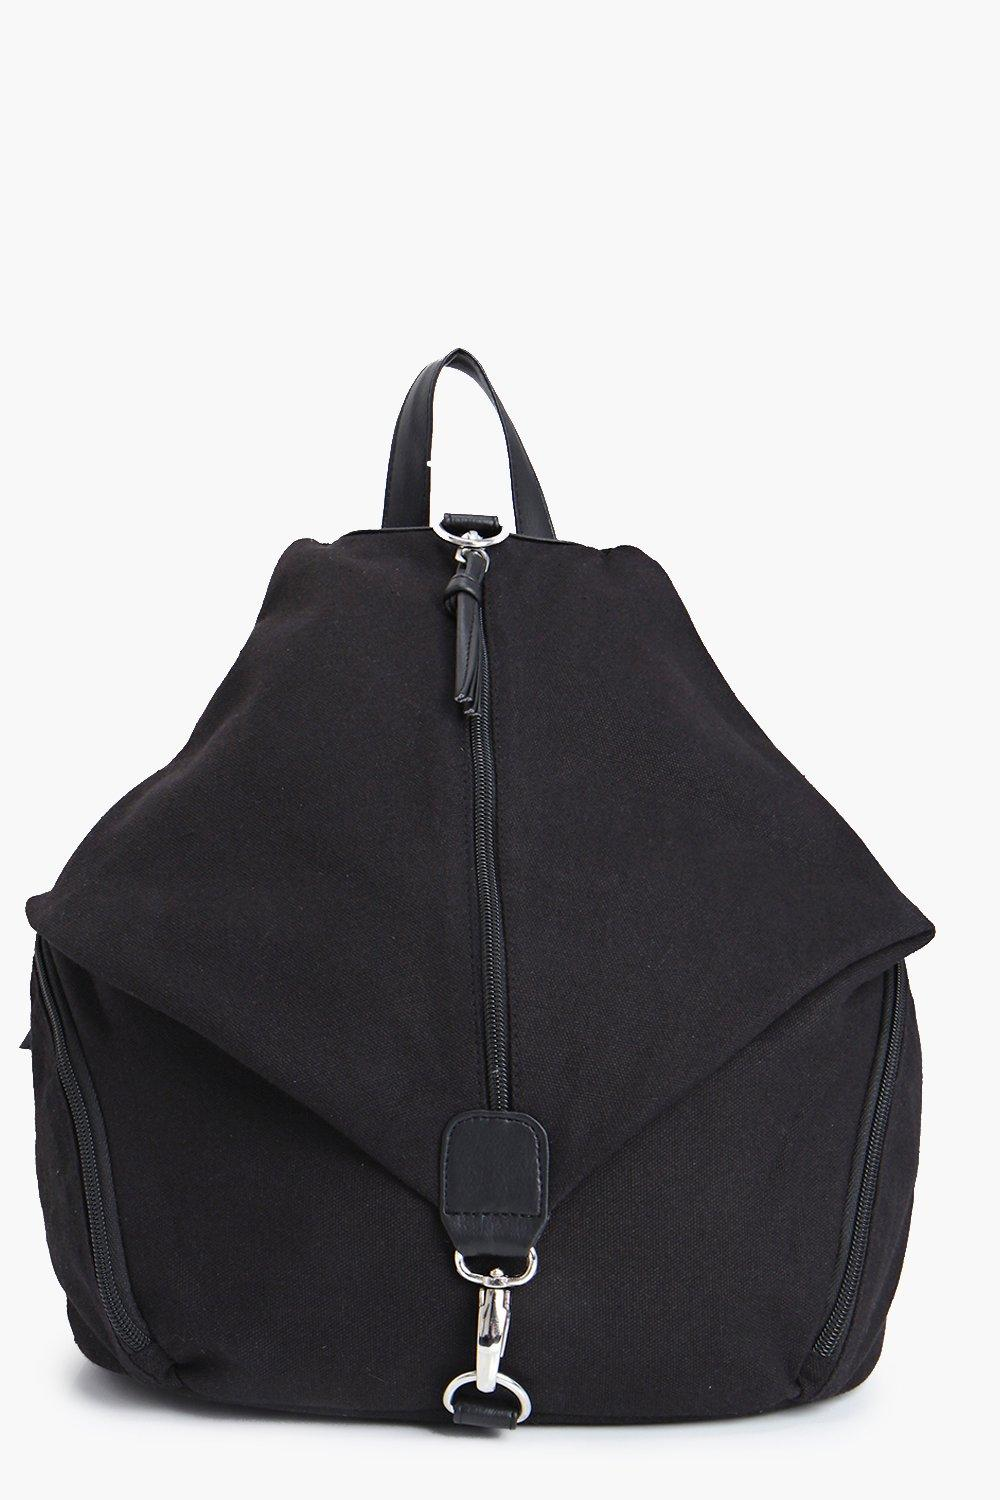 Jasmine Backpack